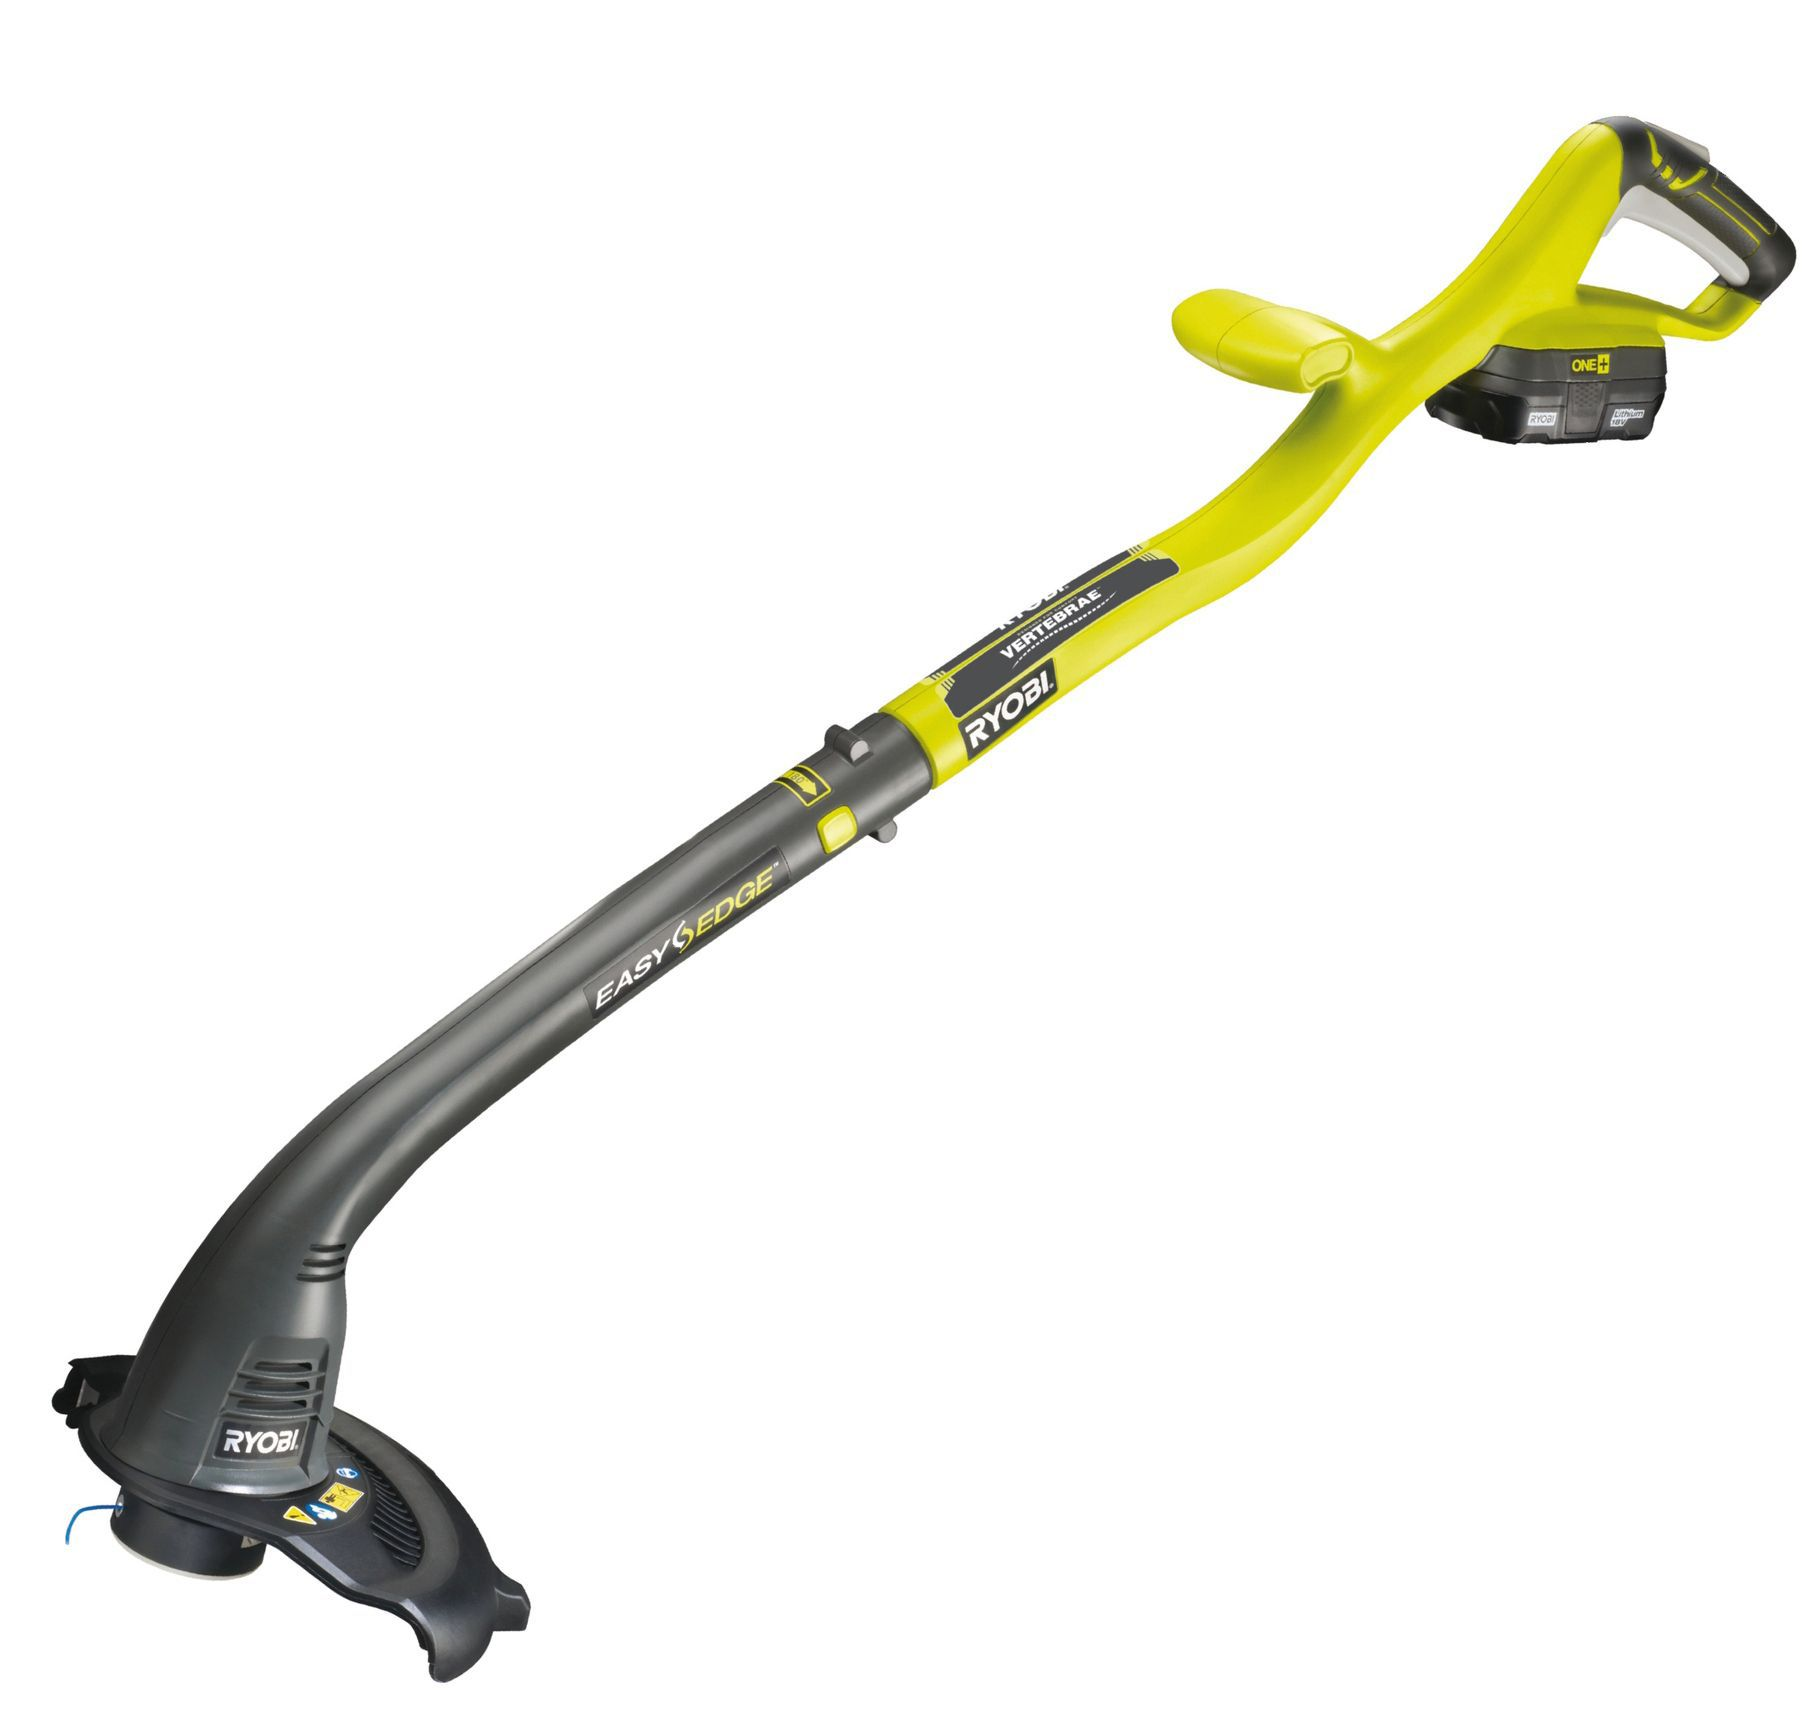 Personable Ryobi One V Cordless Lithiumion Grass Trimmer  Departments  With Excellent Ryobi One V Cordless Lithiumion Grass Trimmer  Departments  Diy At Bq With Beautiful Garden Landscaping Cost Also Indian Garden Parasol In Addition Ballerina Restaurant Covent Garden And Moorten Botanical Garden As Well As Garden Hose Repair Parts Additionally Cheap Wooden Garden Furniture From Diycom With   Excellent Ryobi One V Cordless Lithiumion Grass Trimmer  Departments  With Beautiful Ryobi One V Cordless Lithiumion Grass Trimmer  Departments  Diy At Bq And Personable Garden Landscaping Cost Also Indian Garden Parasol In Addition Ballerina Restaurant Covent Garden From Diycom